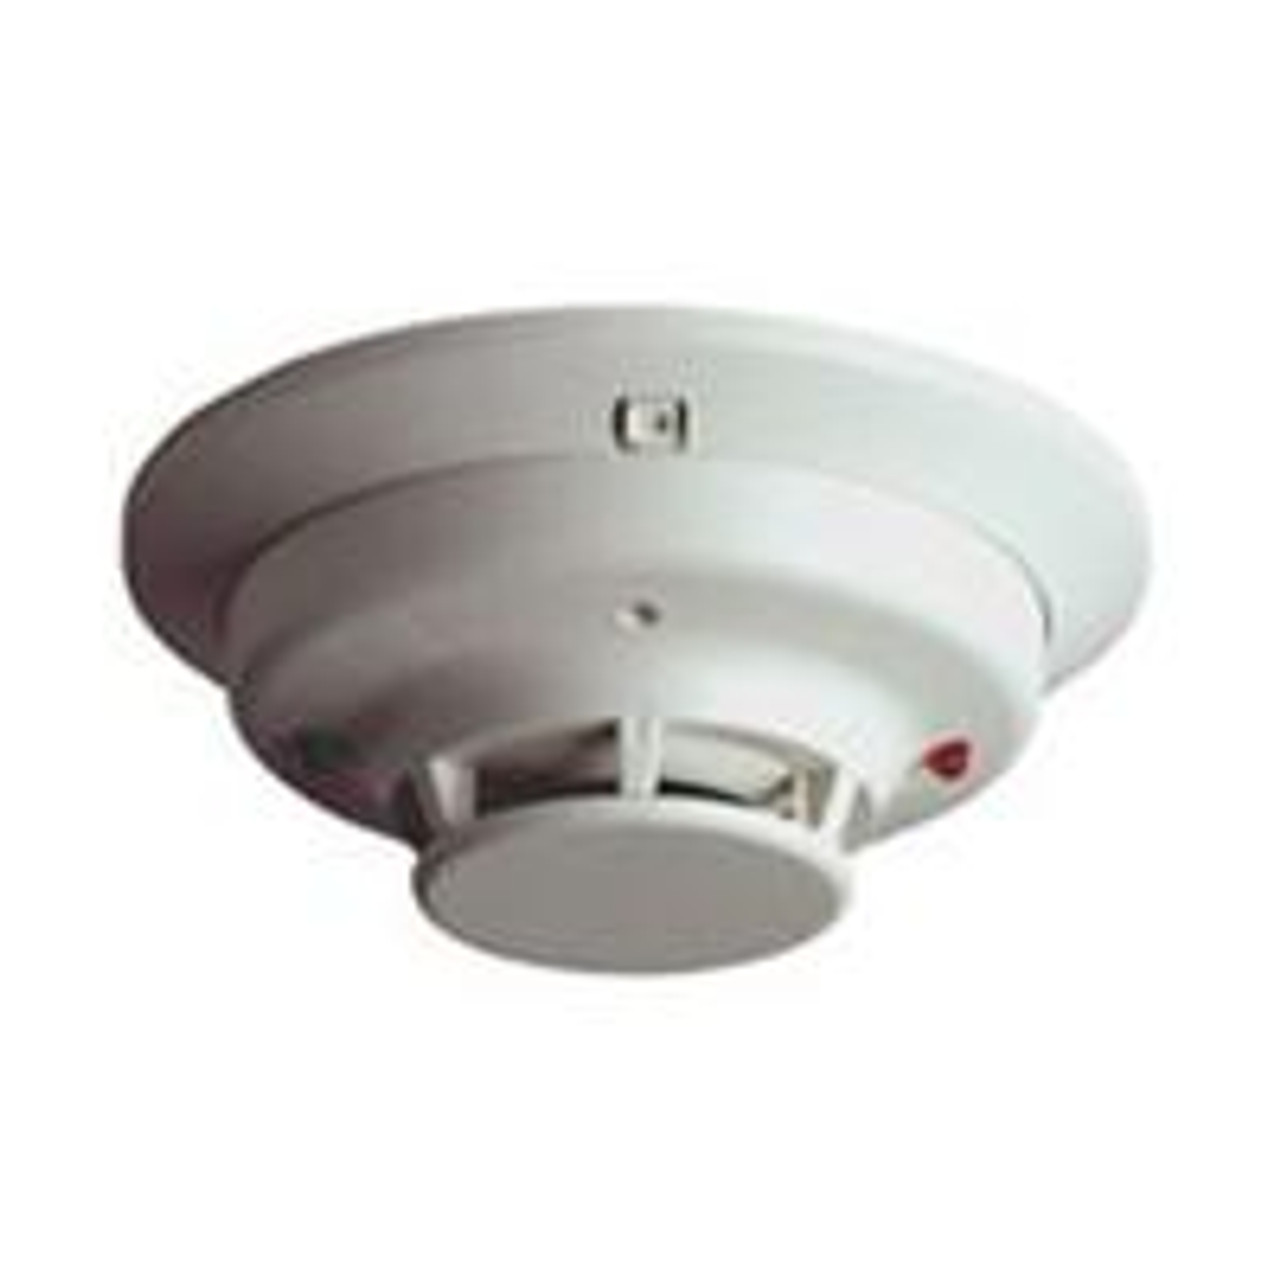 System Sensor 4WB I3 Series 4-Wire Photoelectric Smoke Detector